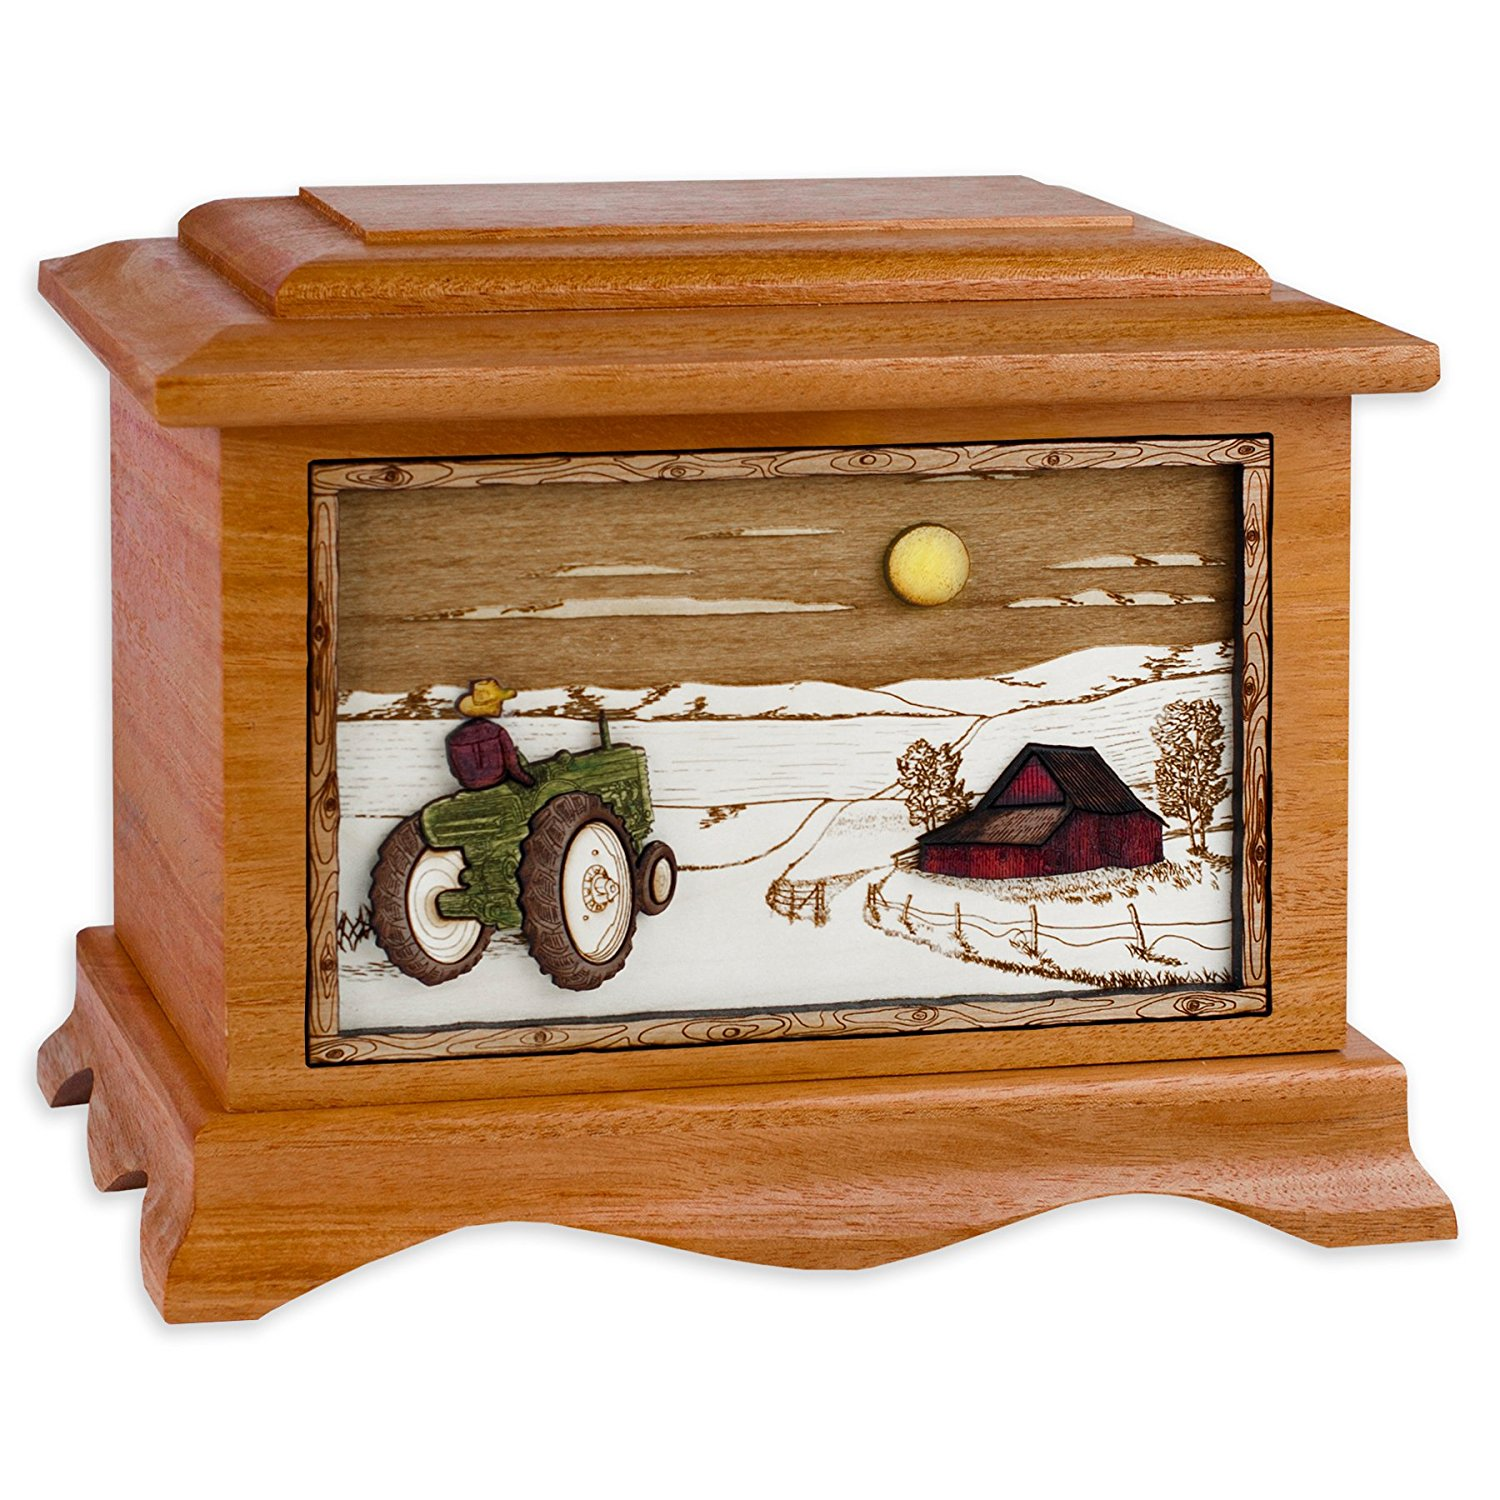 Mahogany Wood Funeral Urn with Farm & Tractor Inlay Art